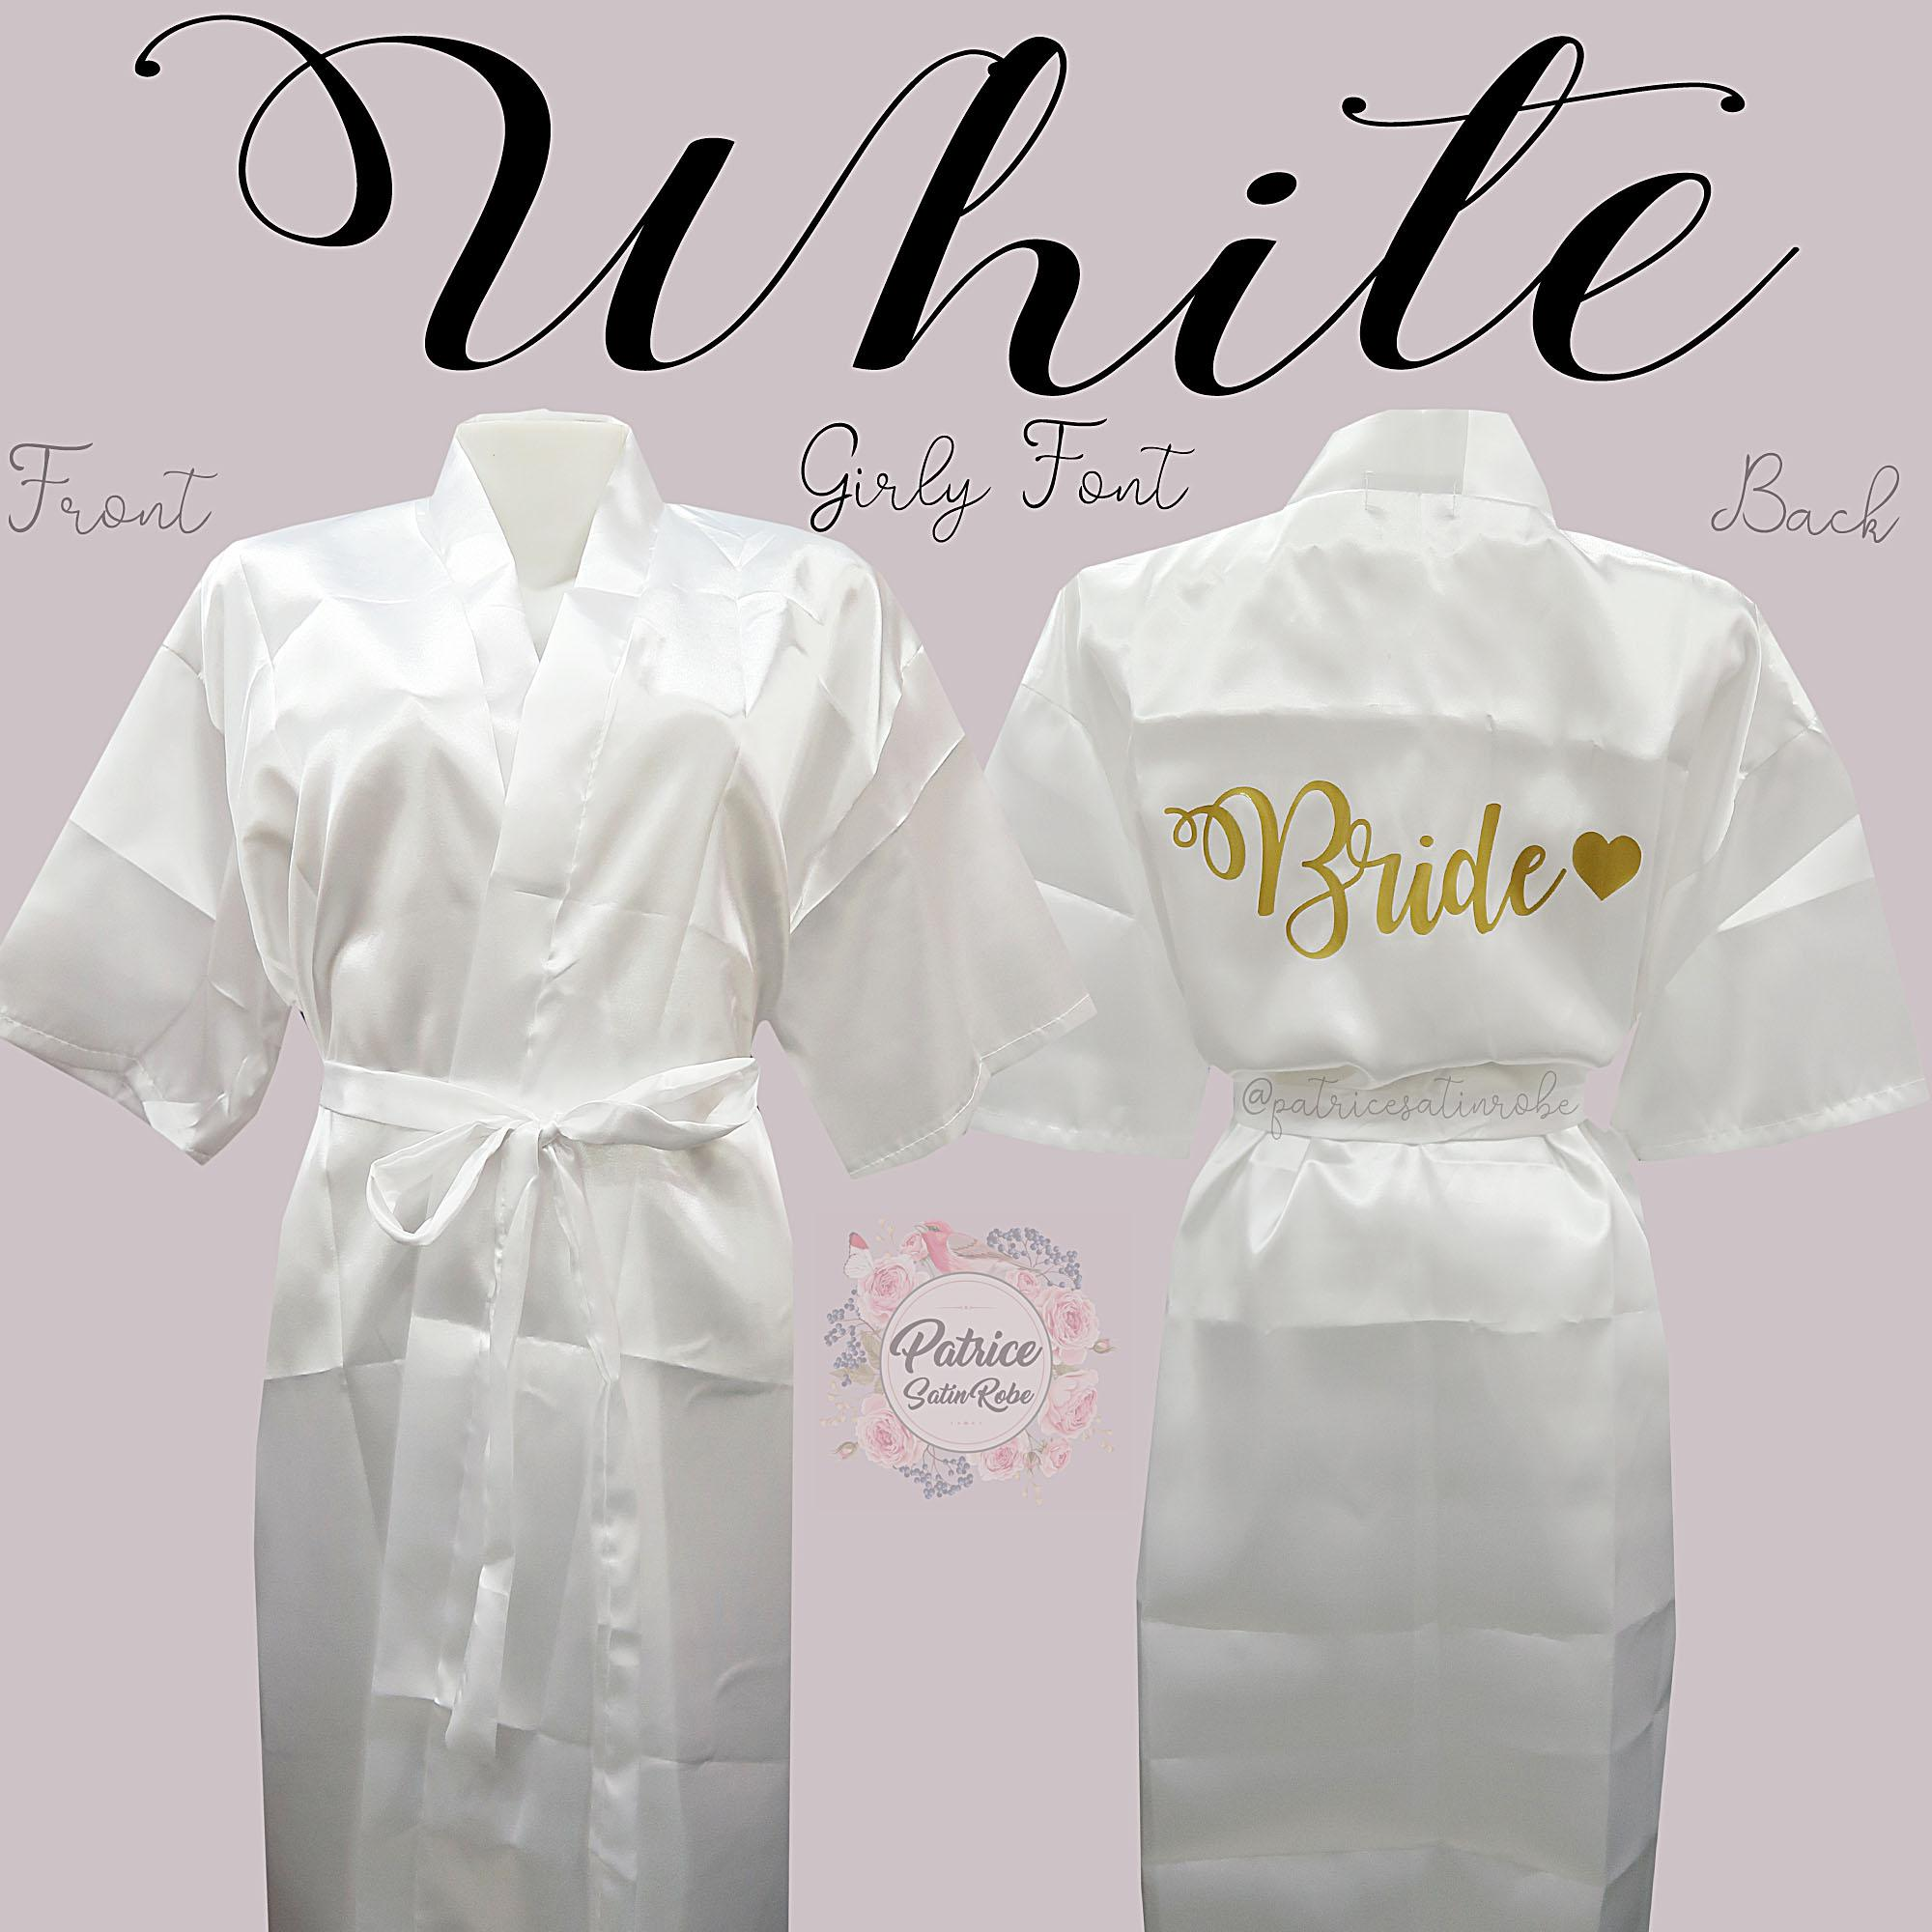 69547af267ef Womens Robes for sale - Night Robes for Women Online Deals & Prices ...